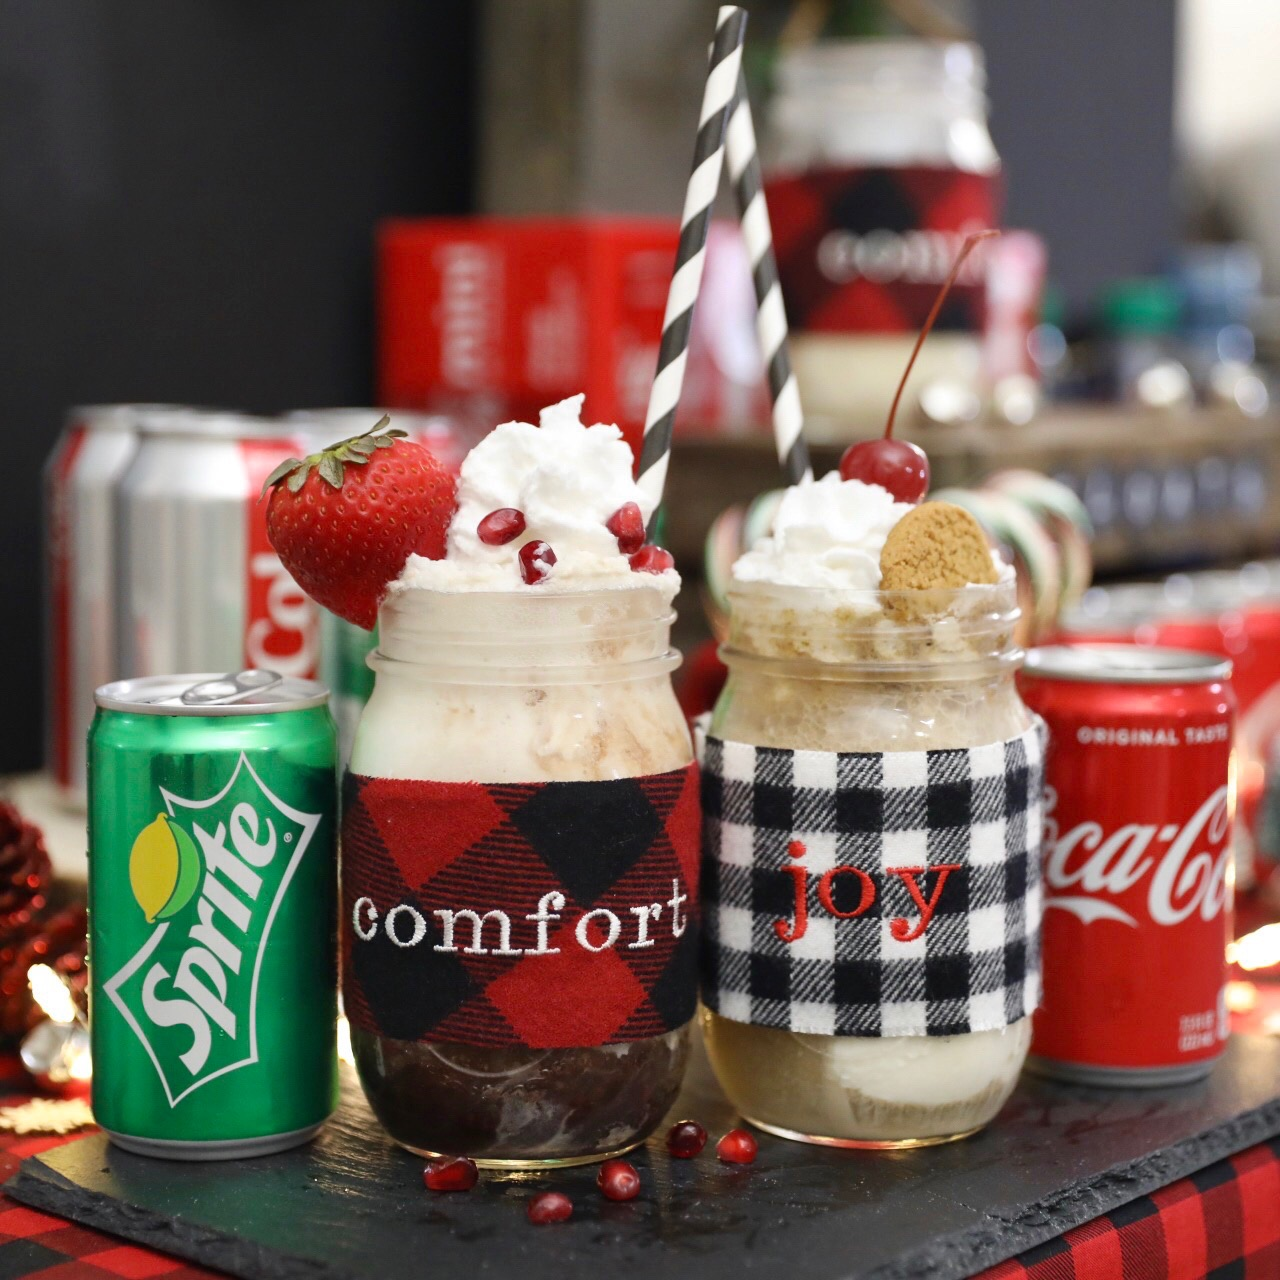 Christmas Ice Cream Float Recipes - Coke Float - Pomegranate Strawberry Ice Cream Float Recipe